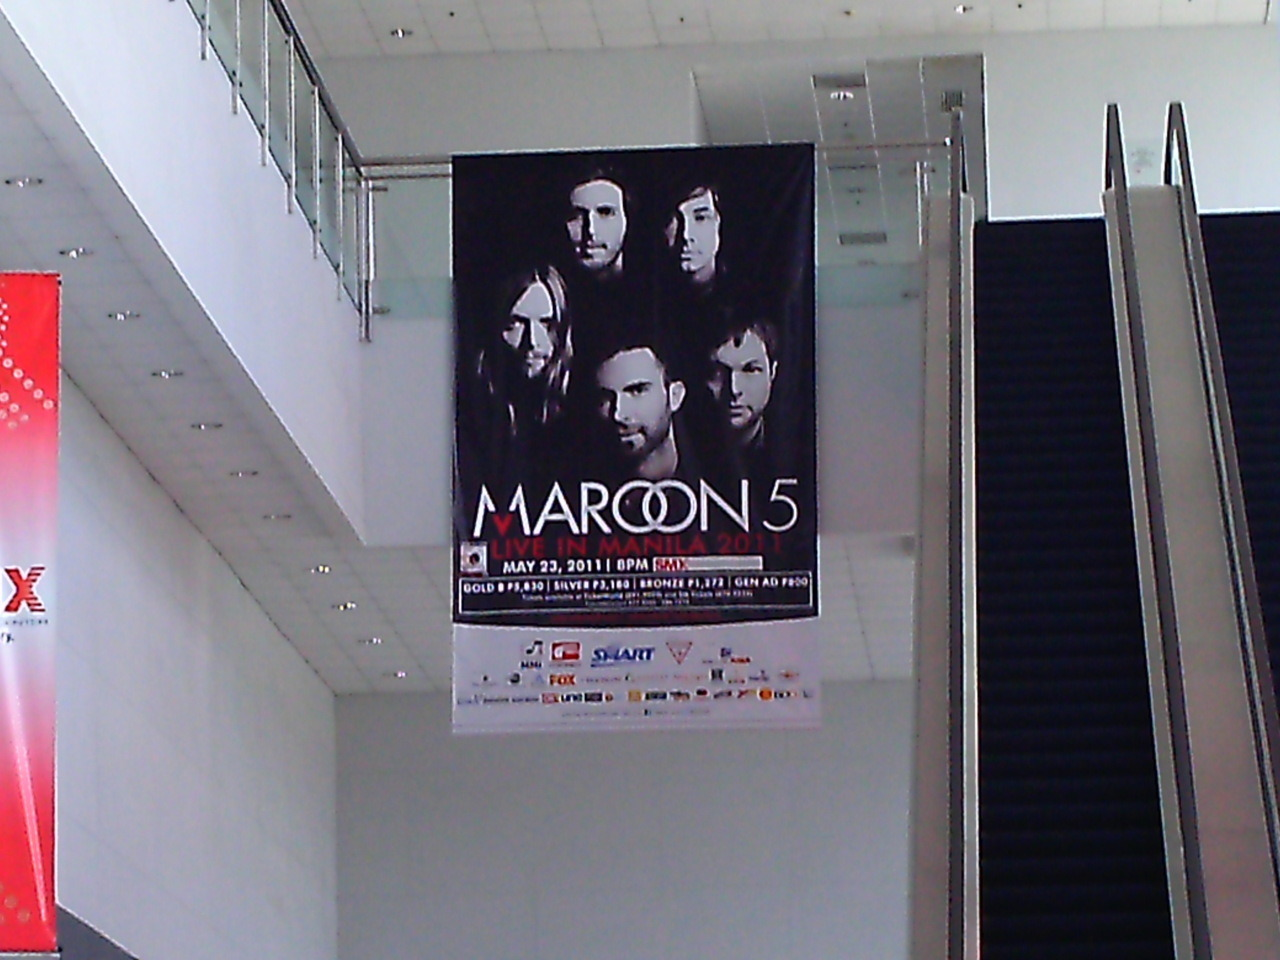 i remember staring at this concert poster when i was waiting in line my gosh i even remember fan girling over that huge poster my gosh haha xD